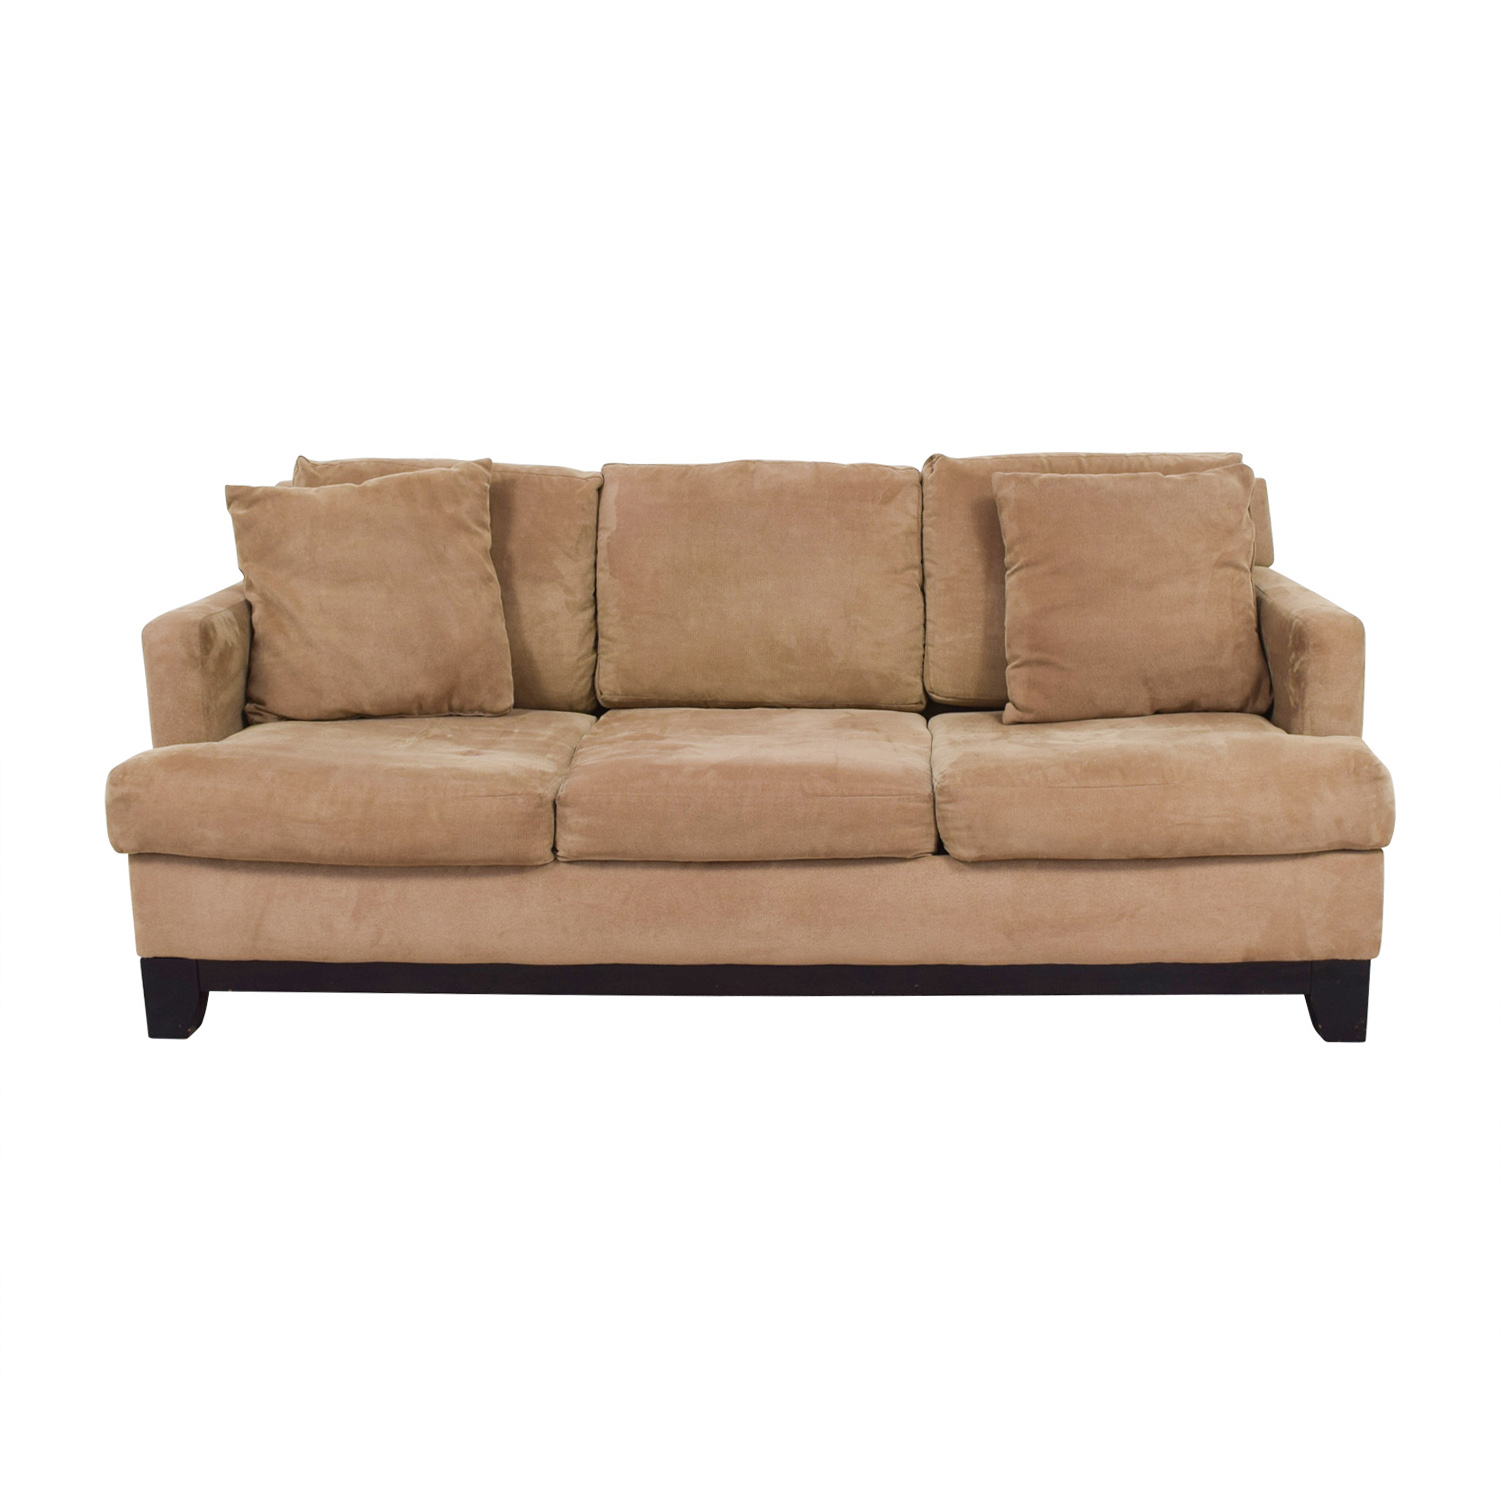 Macys Macys Light Brown Microfiber Three-Cushion Sofa on sale